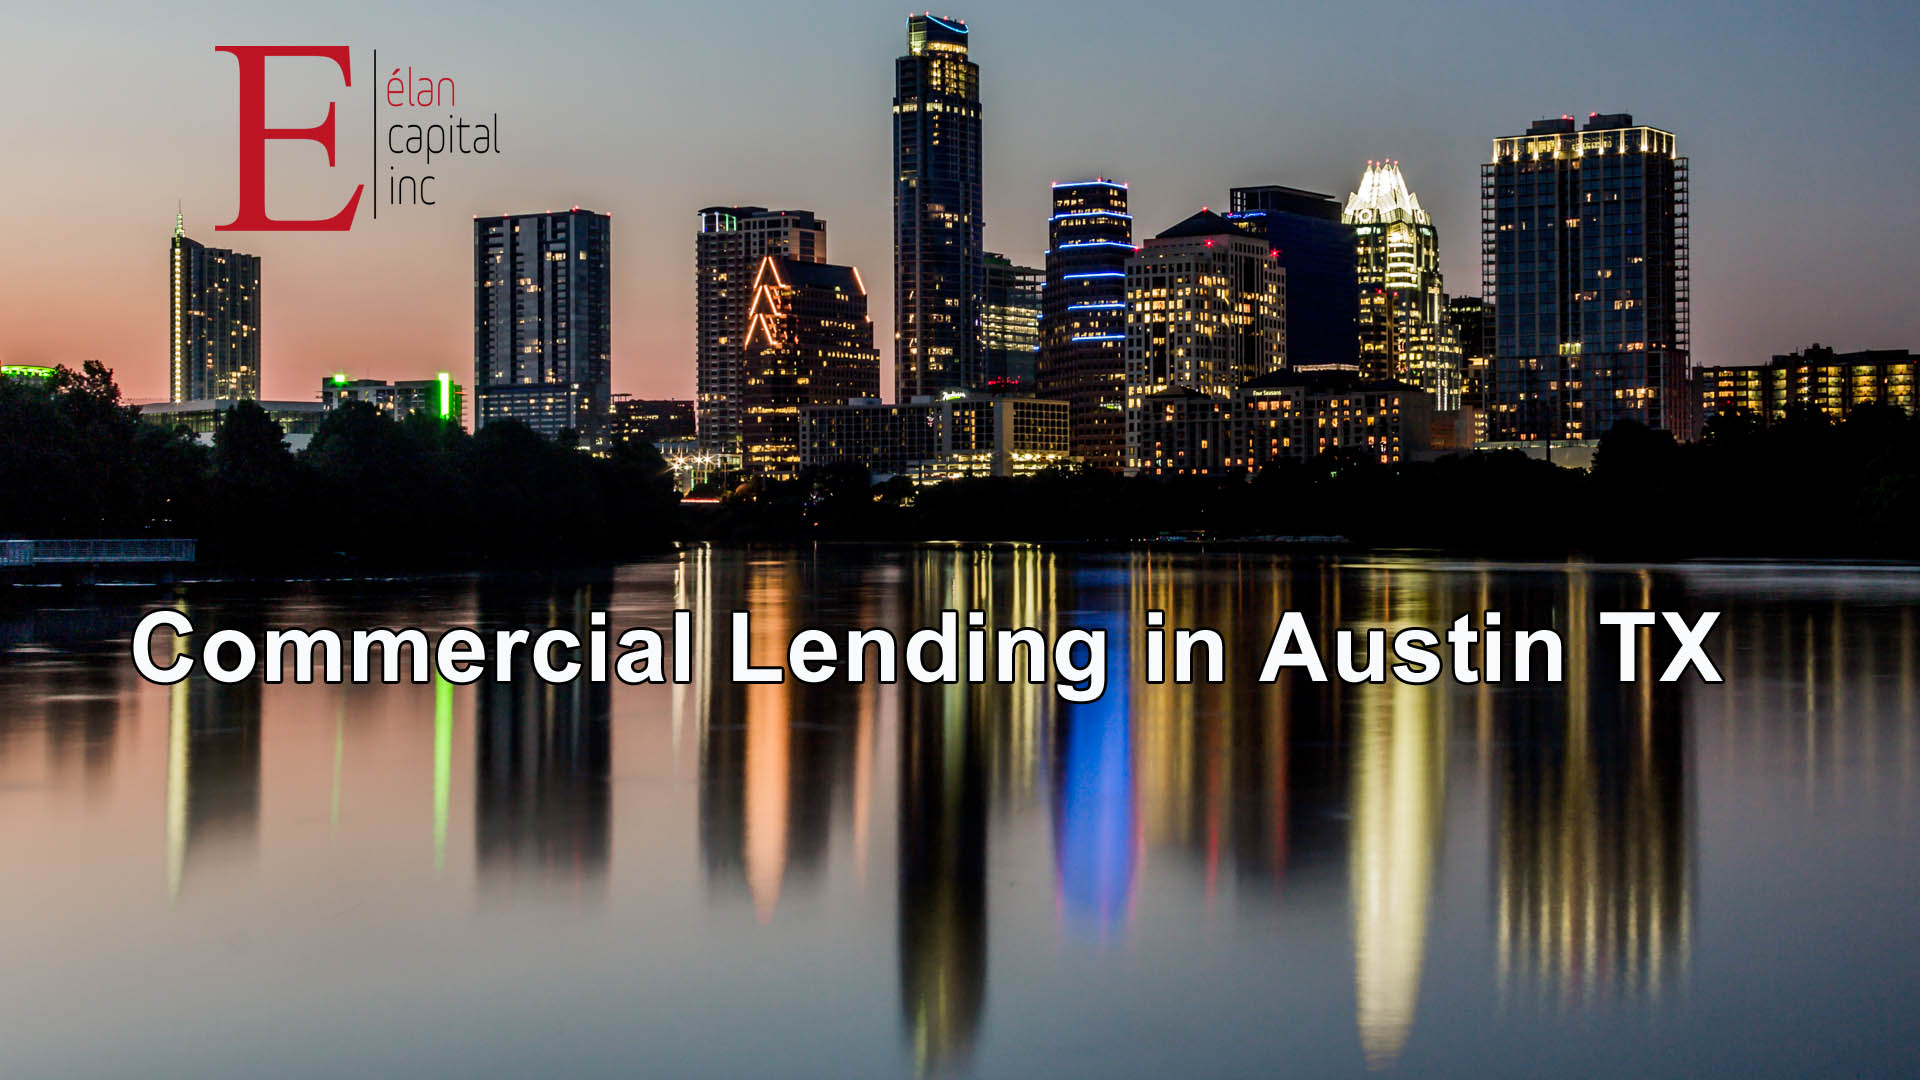 Commercial Lending in Austin TX - Elan Capital Inc